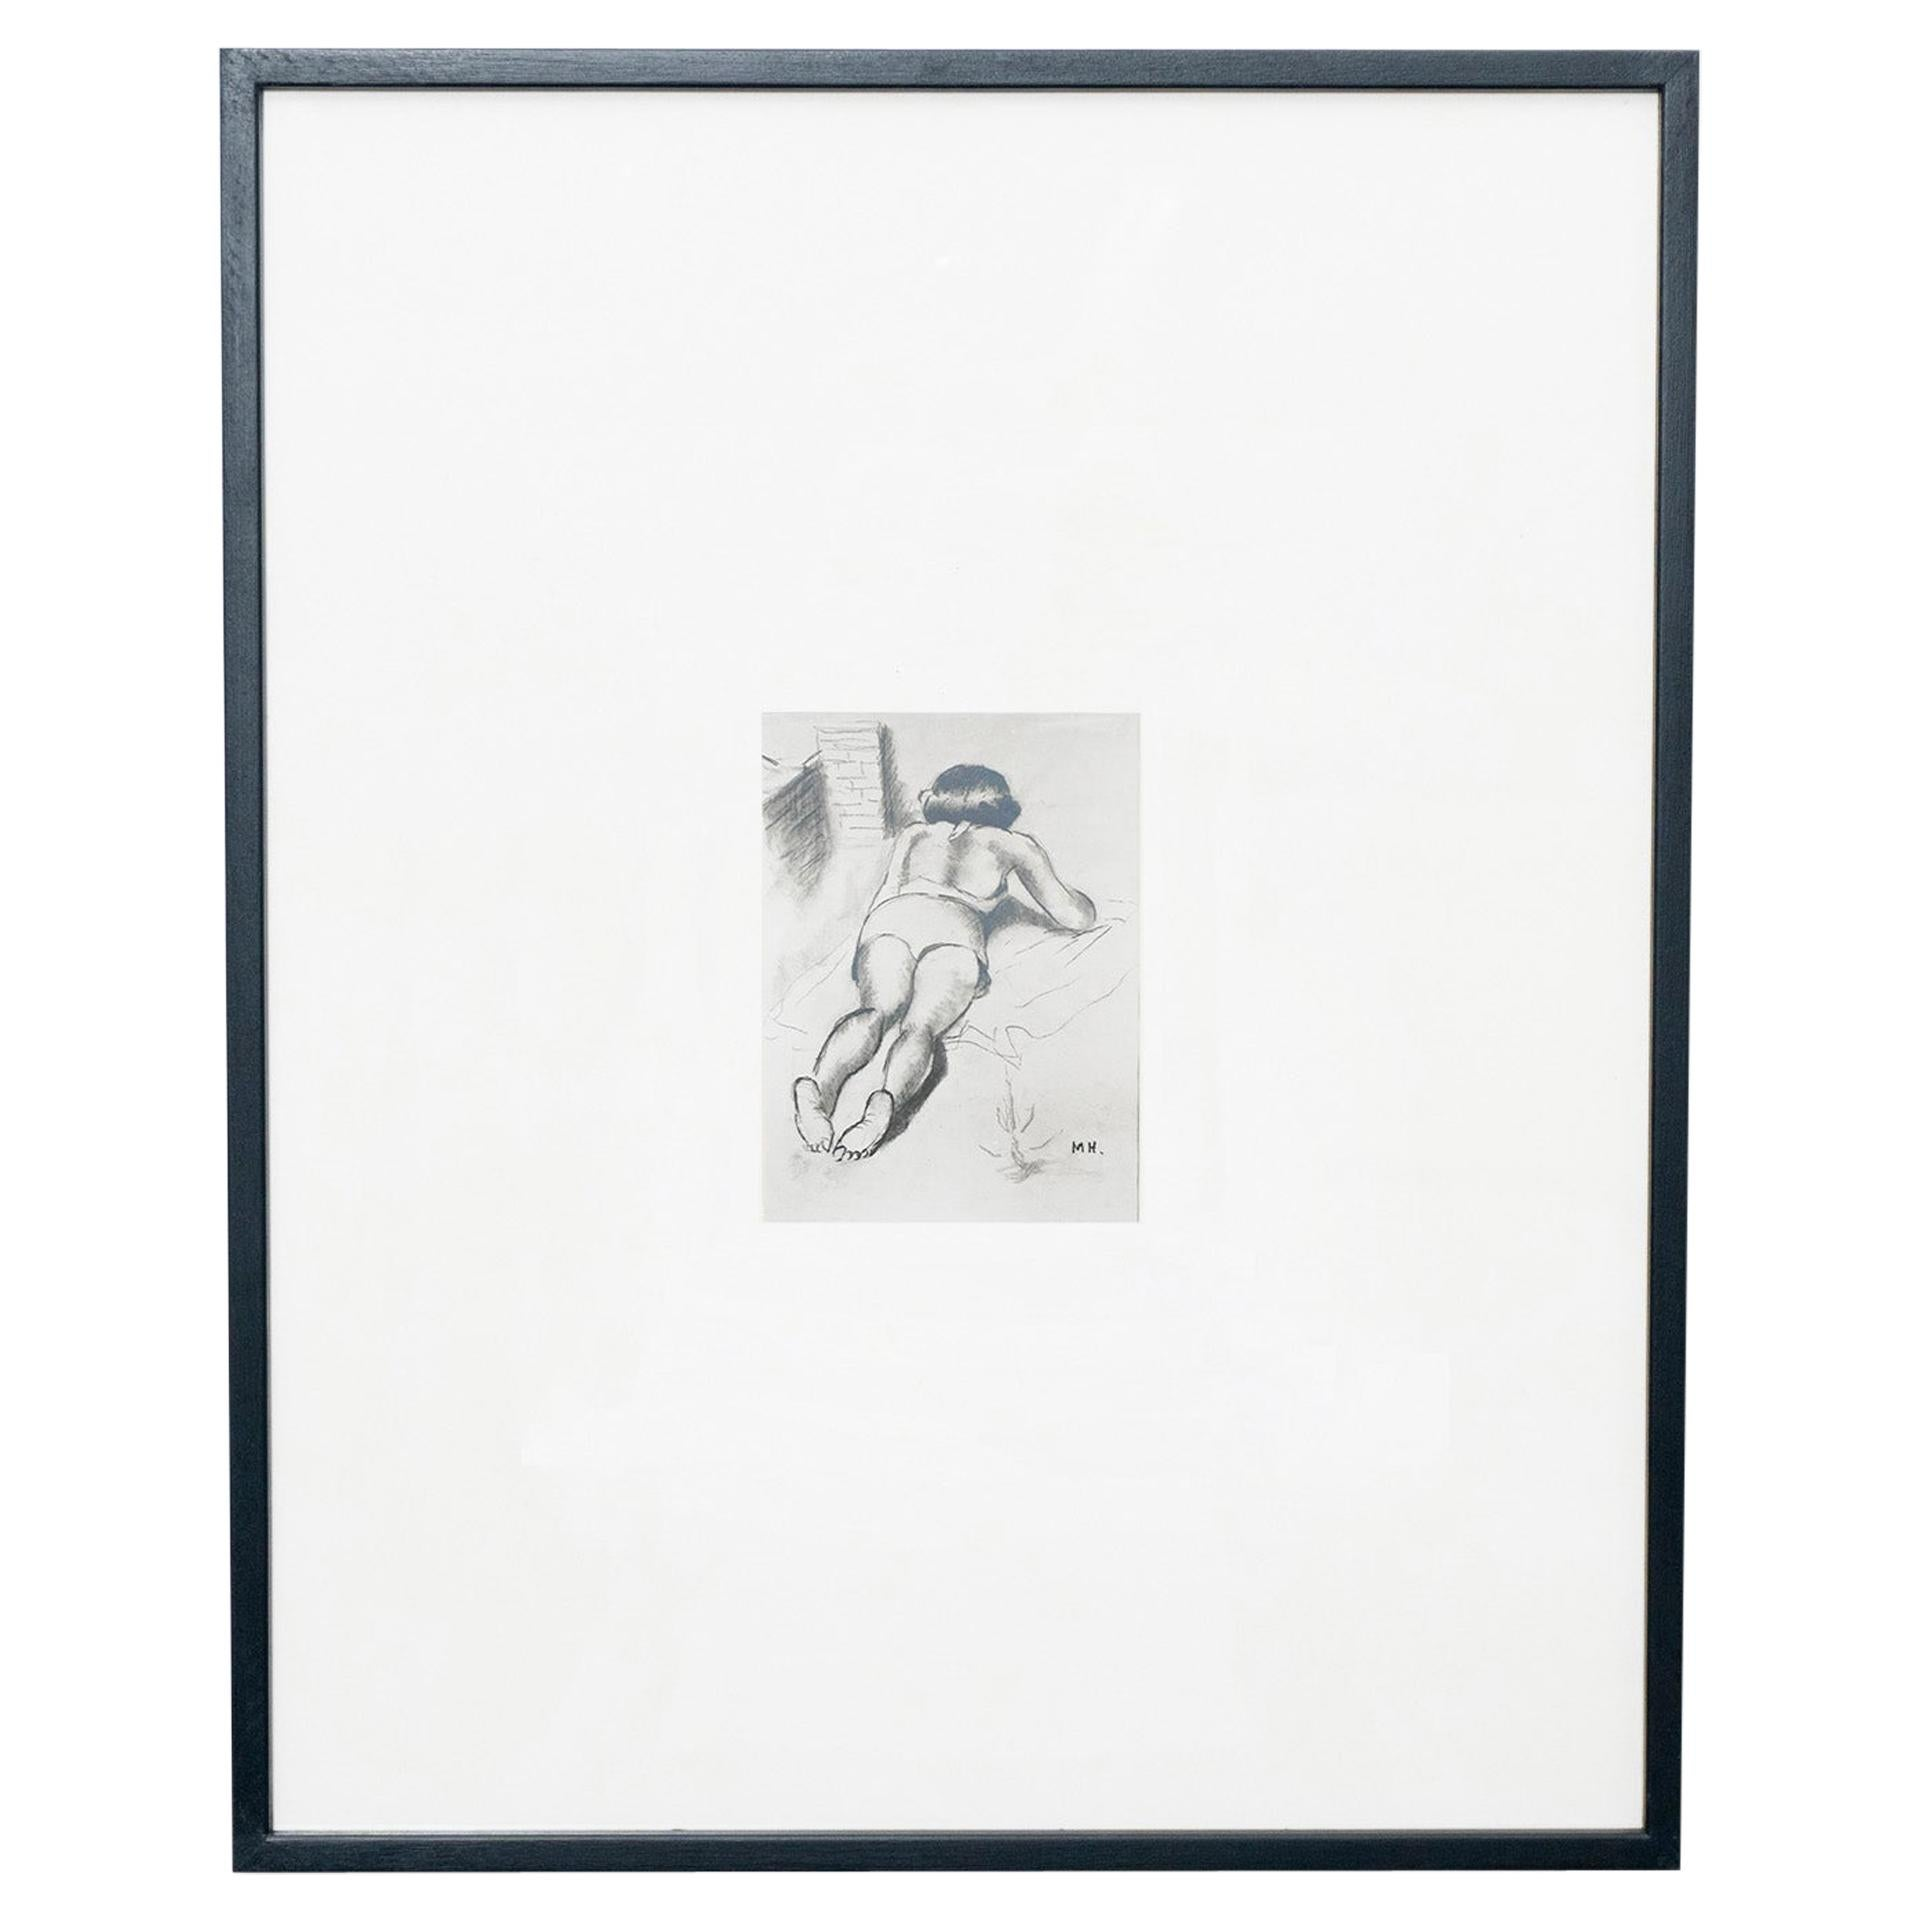 Manolo Hugue Archive Photography of Drawings, circa 1960